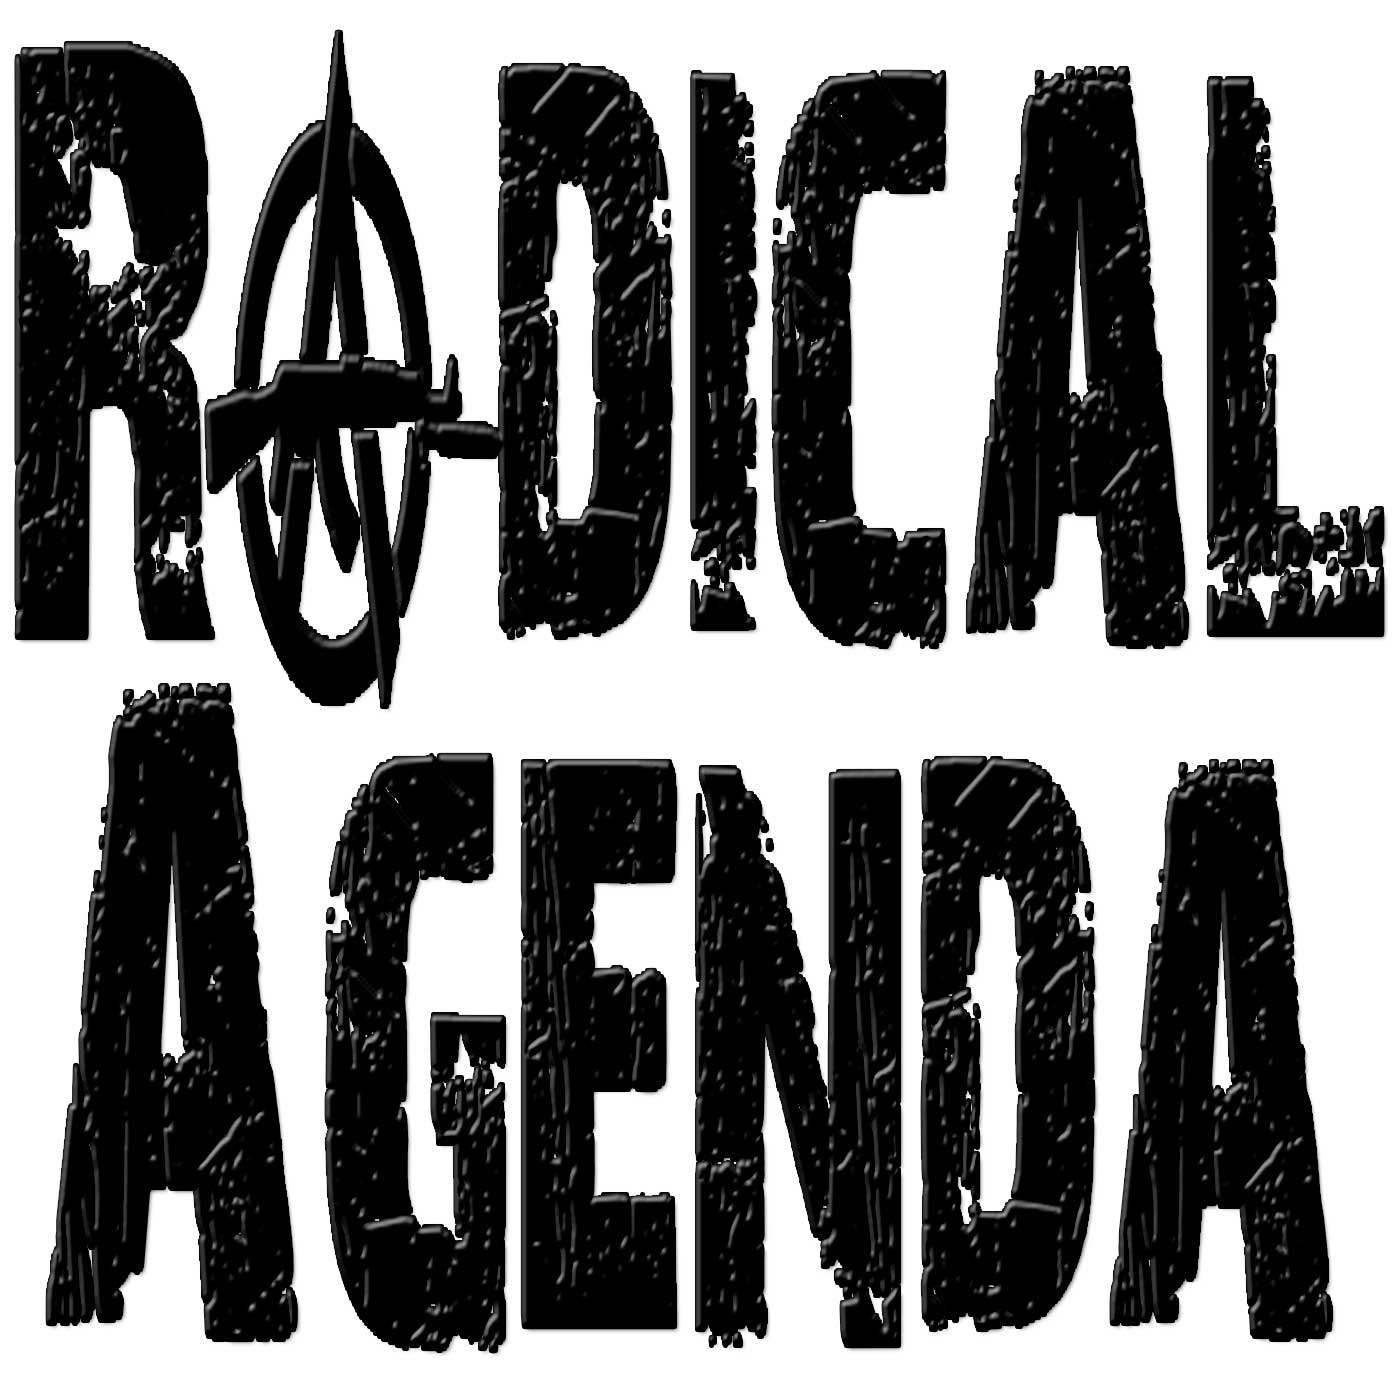 Christopher Cantwell's Radical Agenda